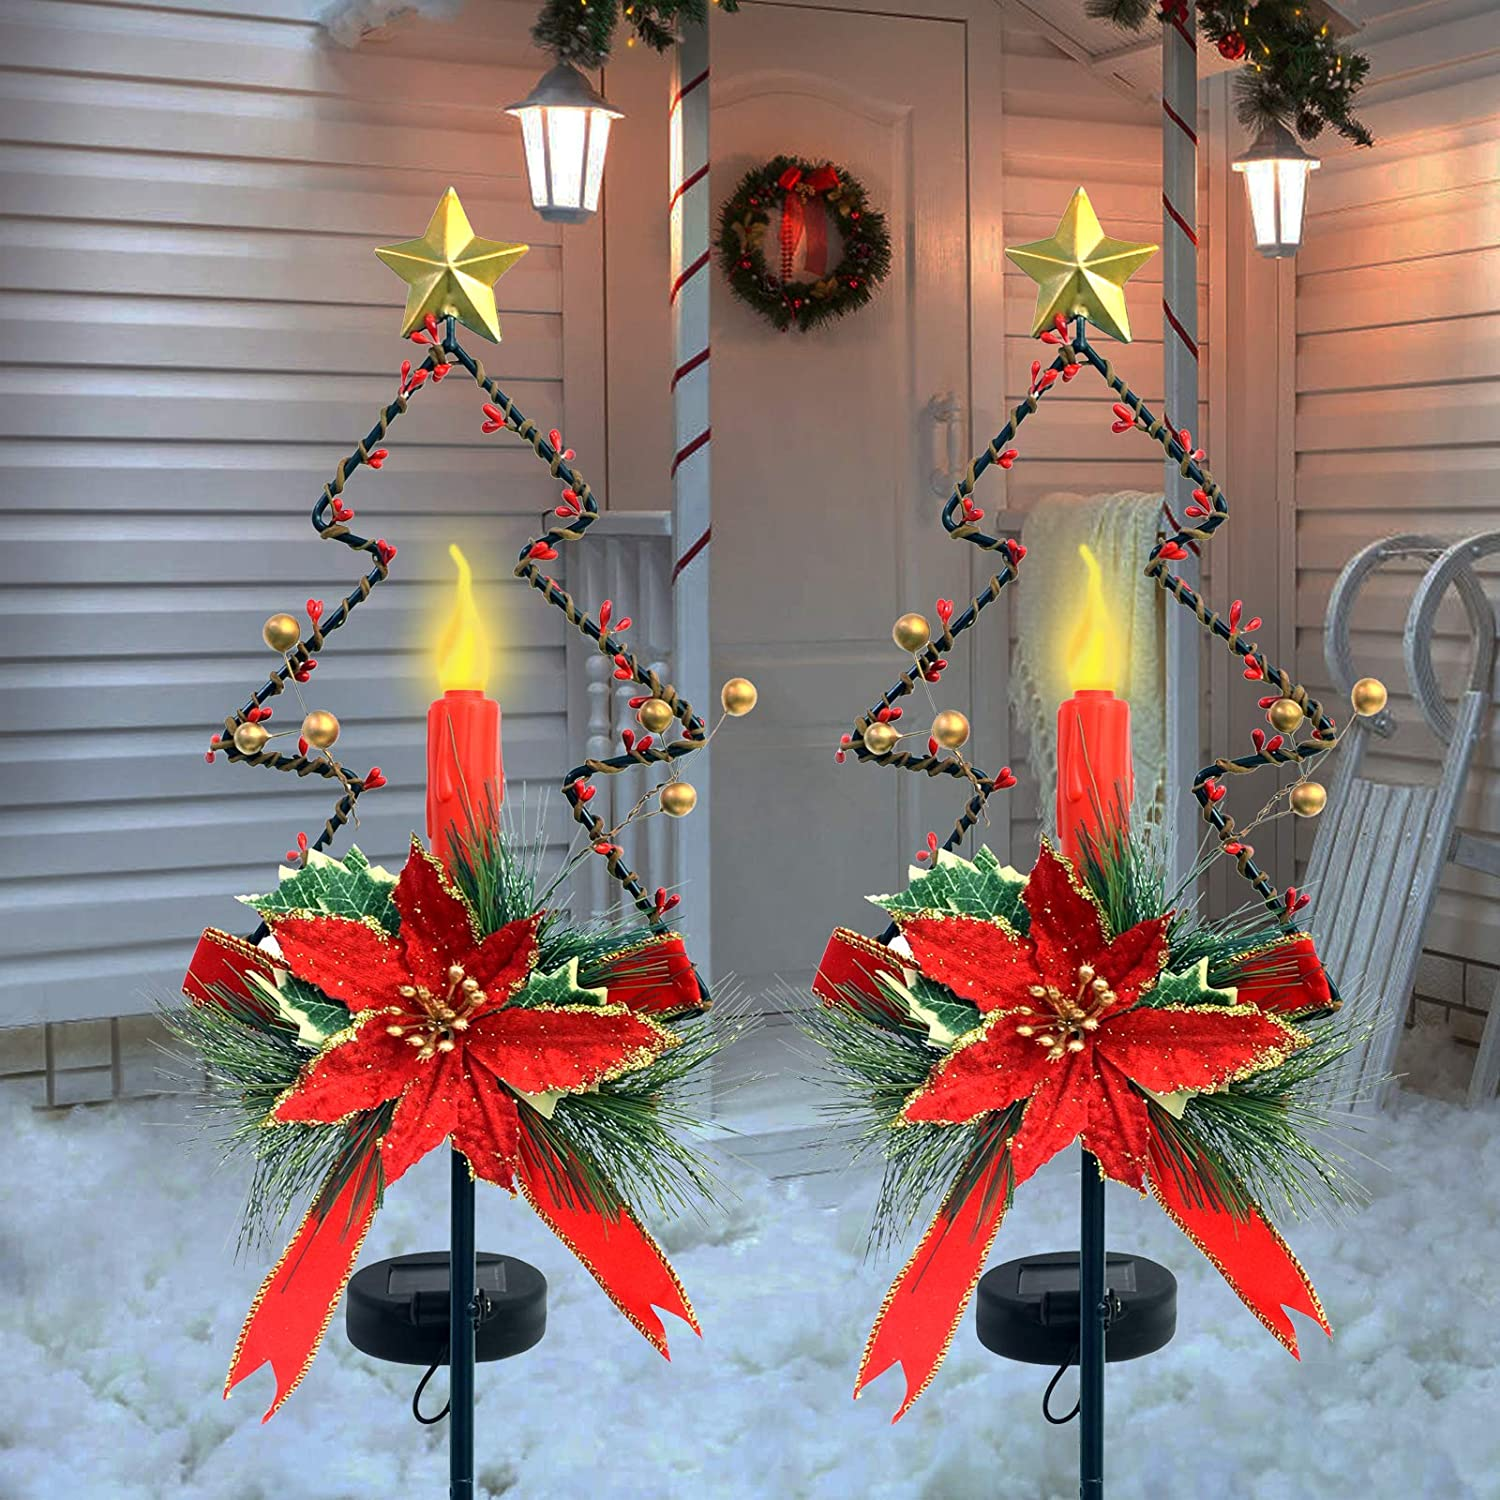 ALLADINBOX 2PCs 32 Inches Solar Christmas Decorations Outdoor LED Solar Powered Candle Xmas Pathway Lights, Metal Garden Stakes Lawn Yard Ornament